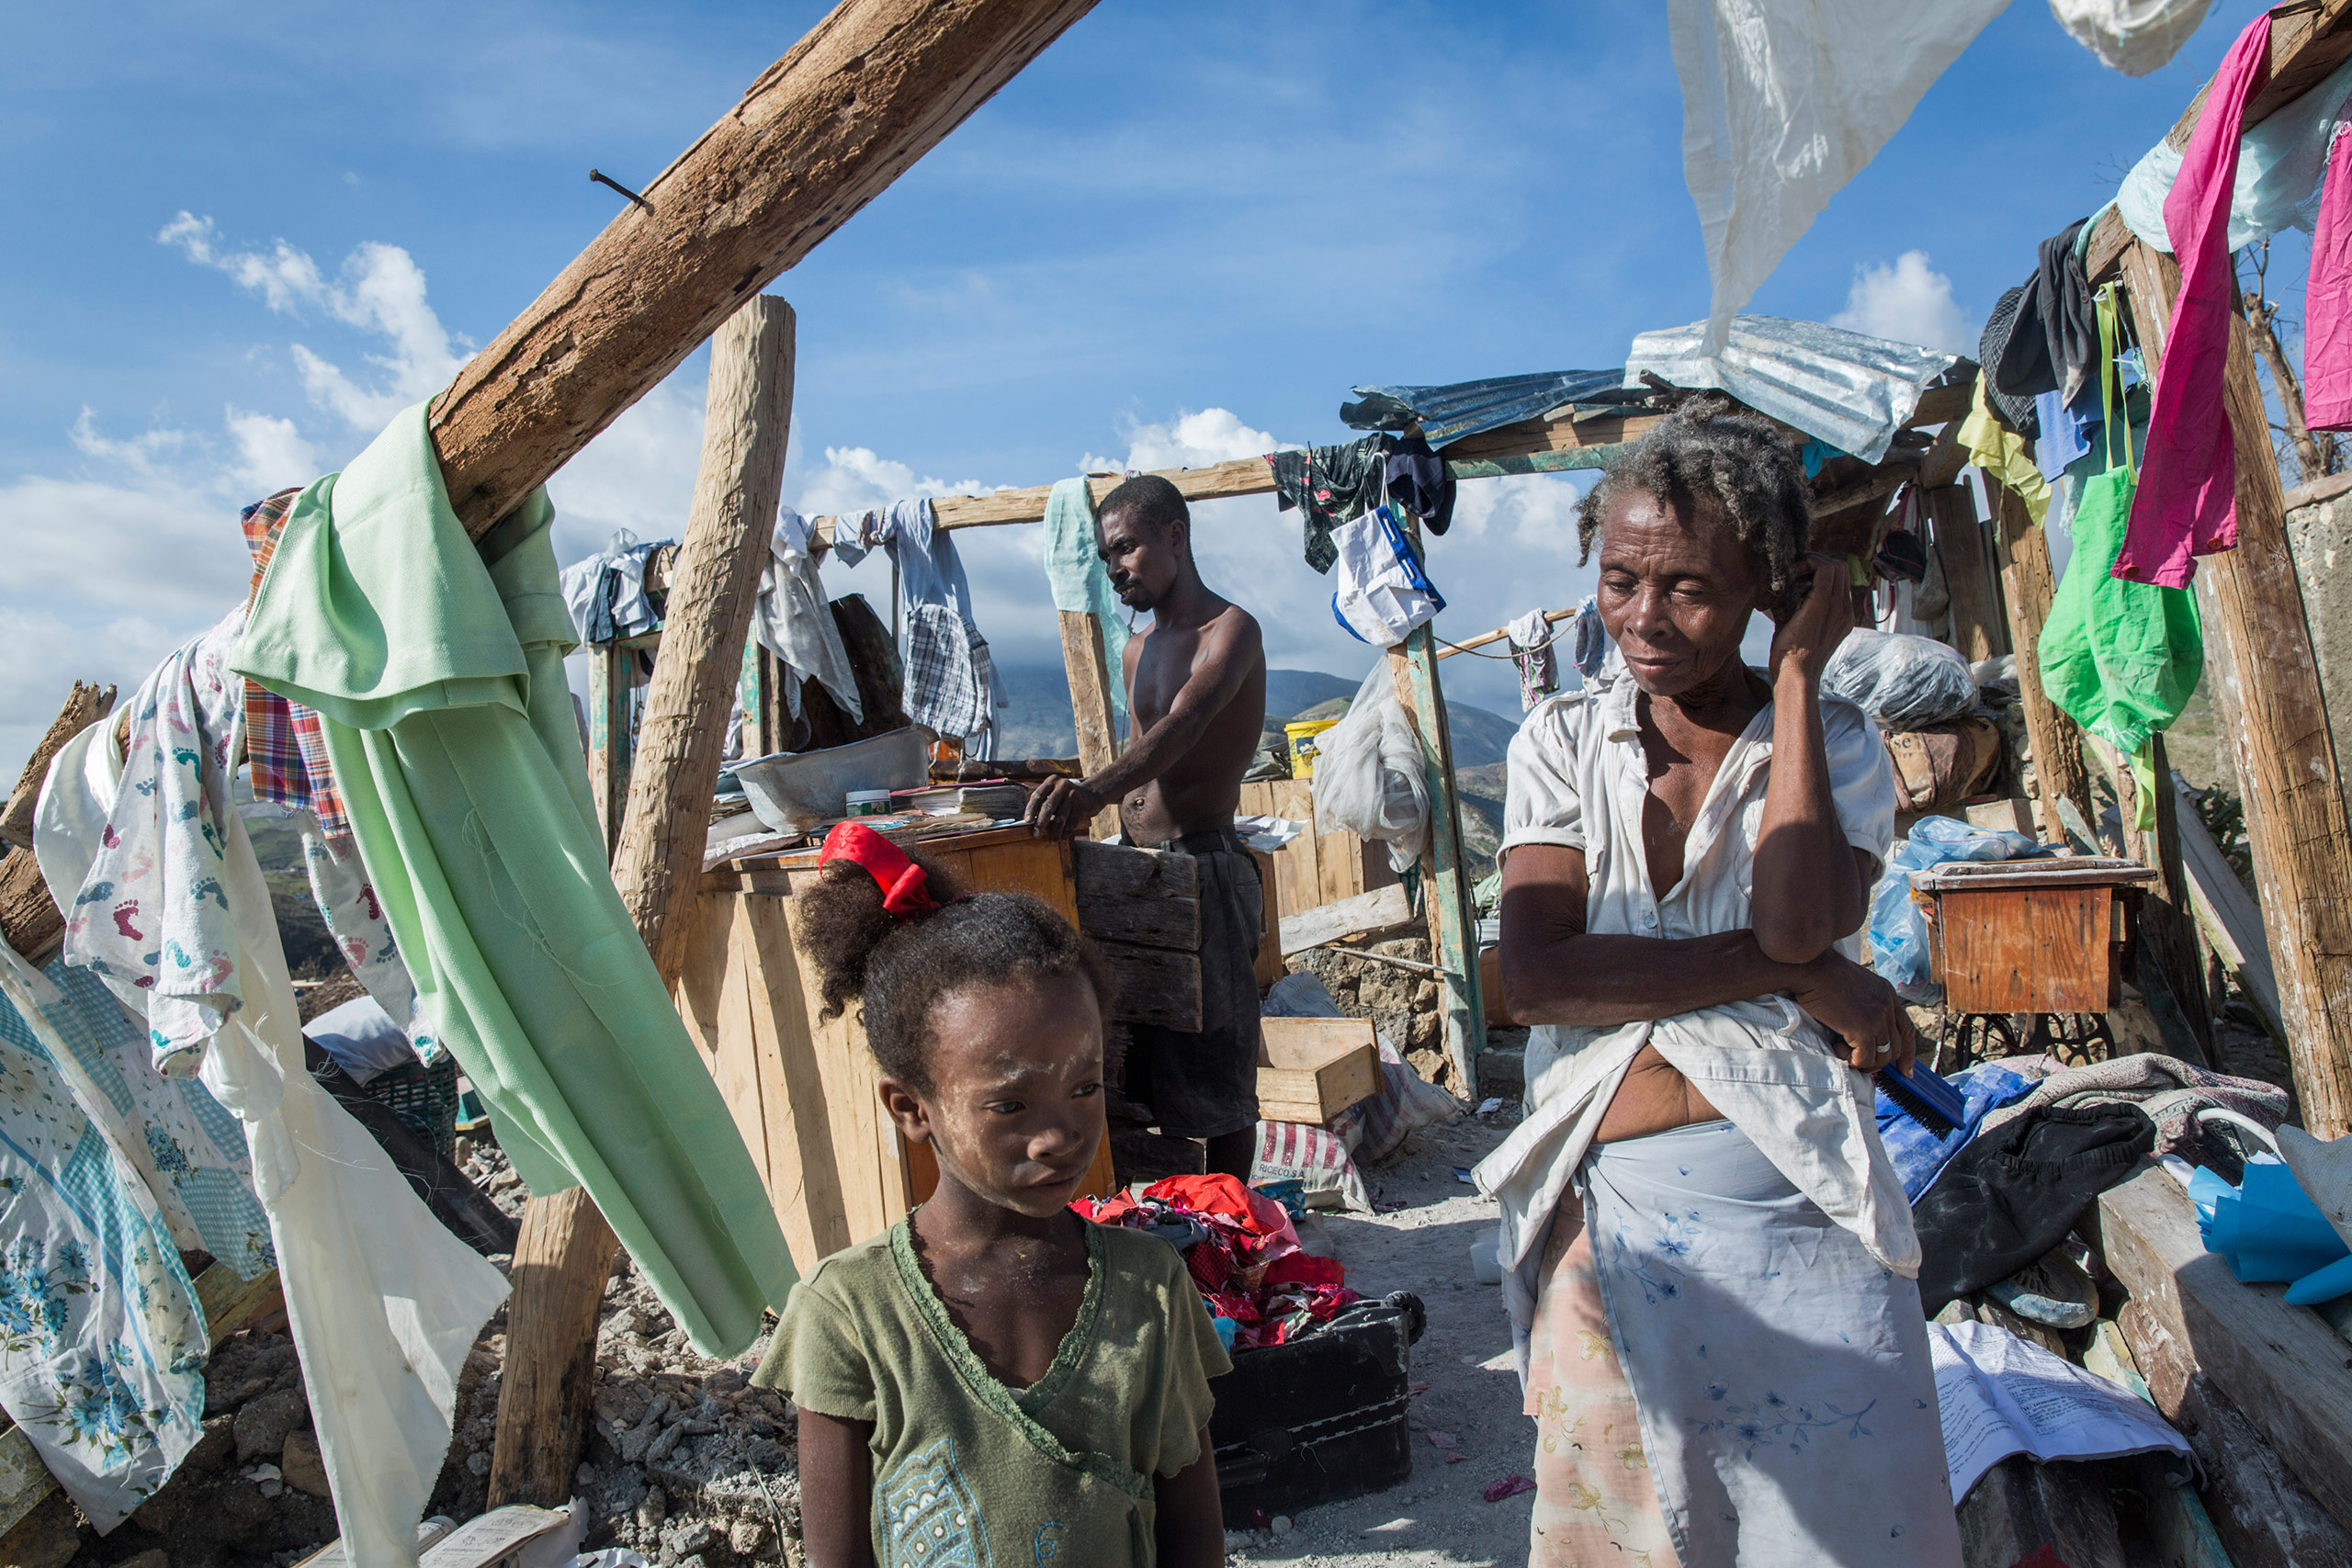 A family stands in the remains of their destroyed home in Roche-à-Bateau, southwestern Haiti, on Oct. 8, 2016. More than 1,000 people were reported killed by Hurricane Matthew, the worst storm to hit the island in more than 50 years.From  On the Ground in Hurricane-Wrecked Haiti